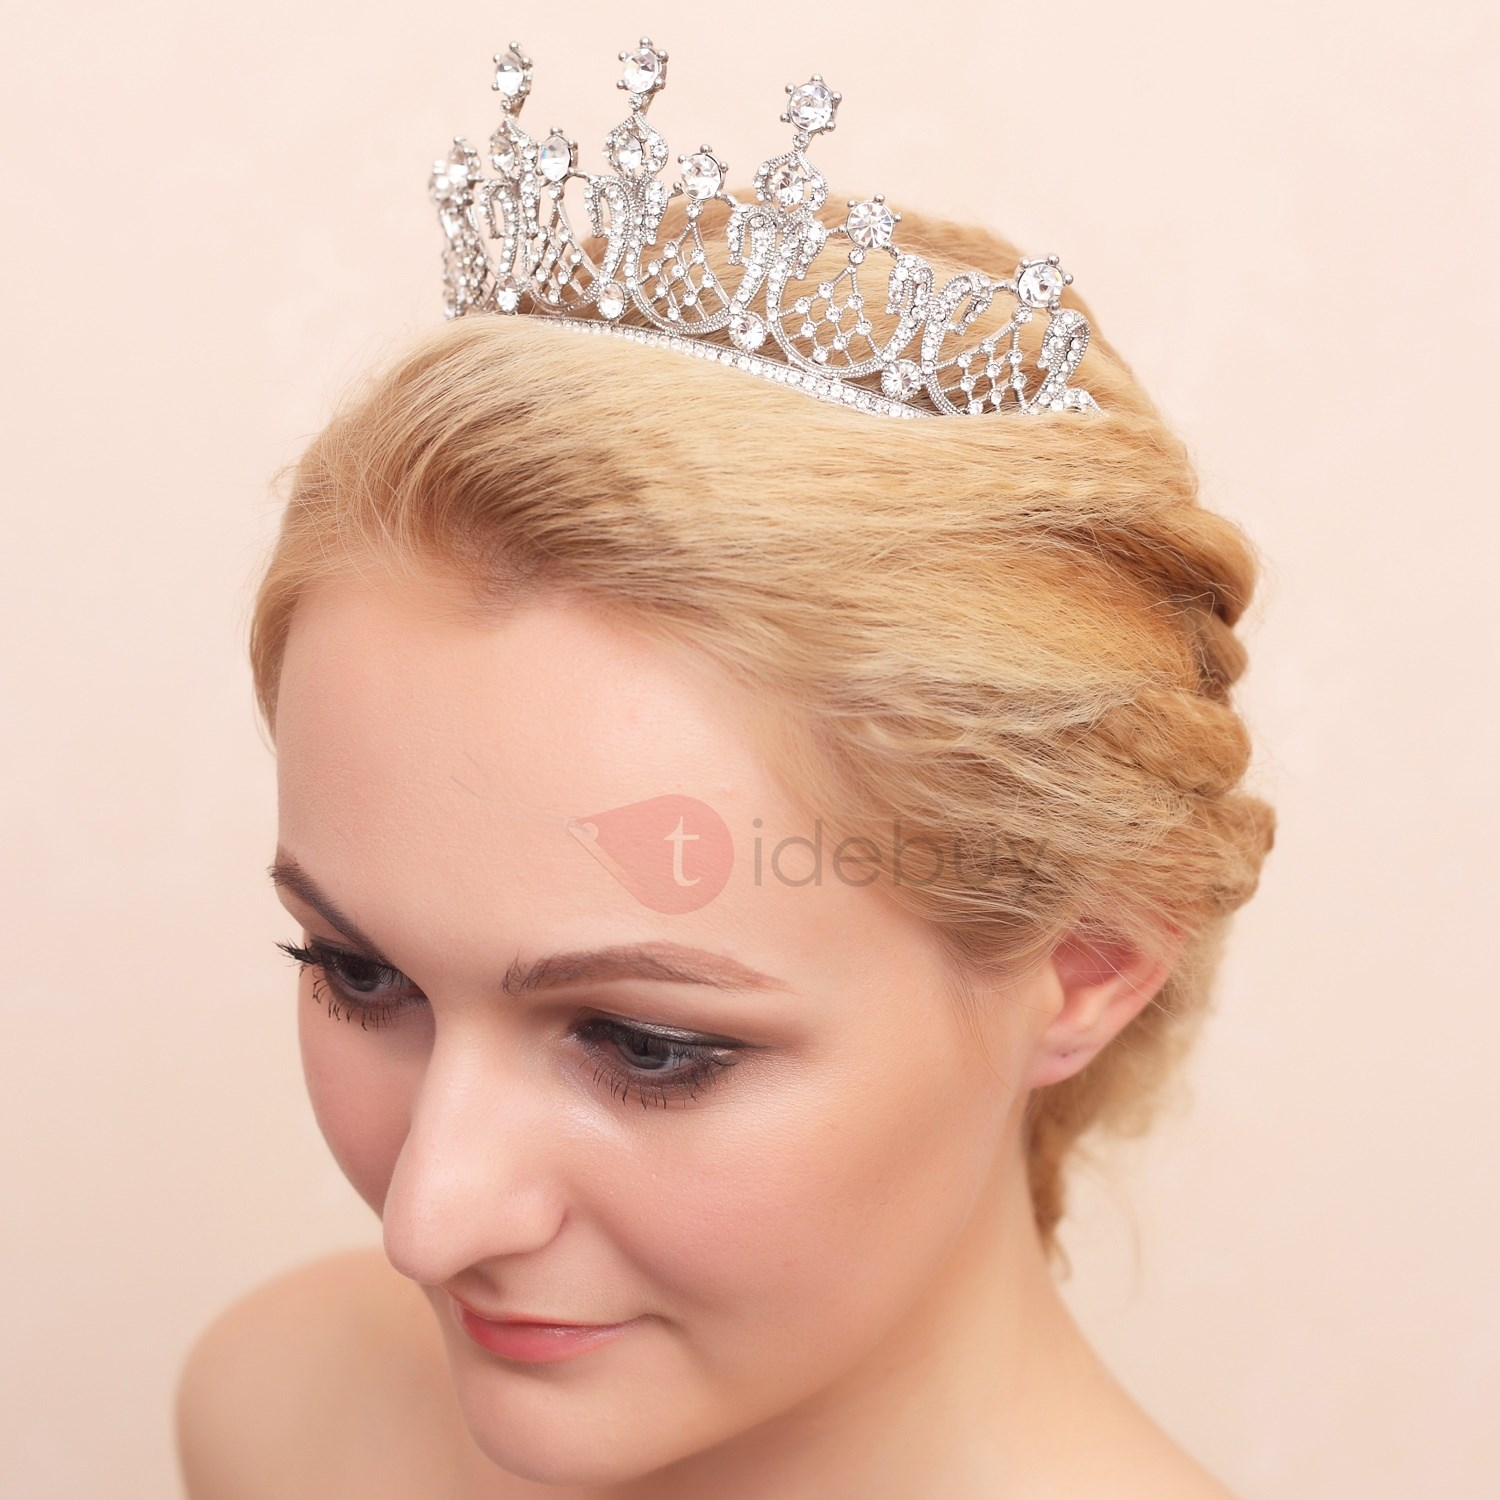 Fashion Shiny Rhinestone Alloy Wedding Crown